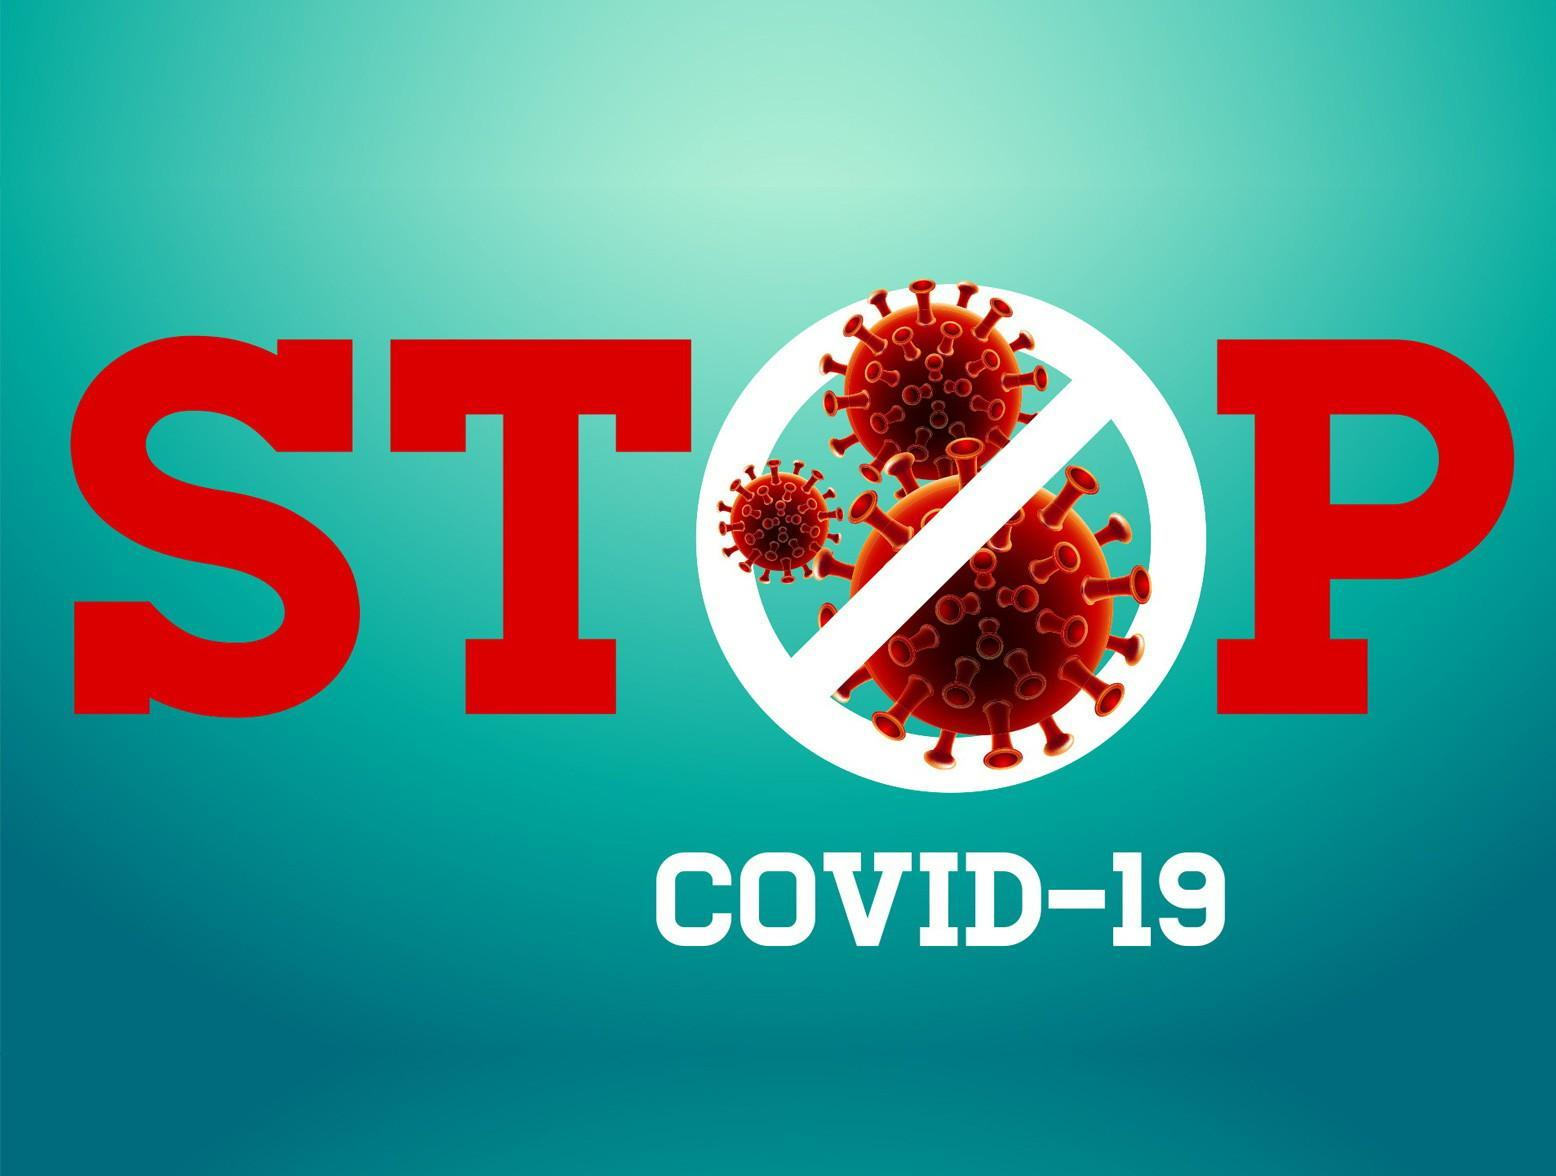 Cocid 19 Prevention And Alerts U2013 Covid 19 Prevention And